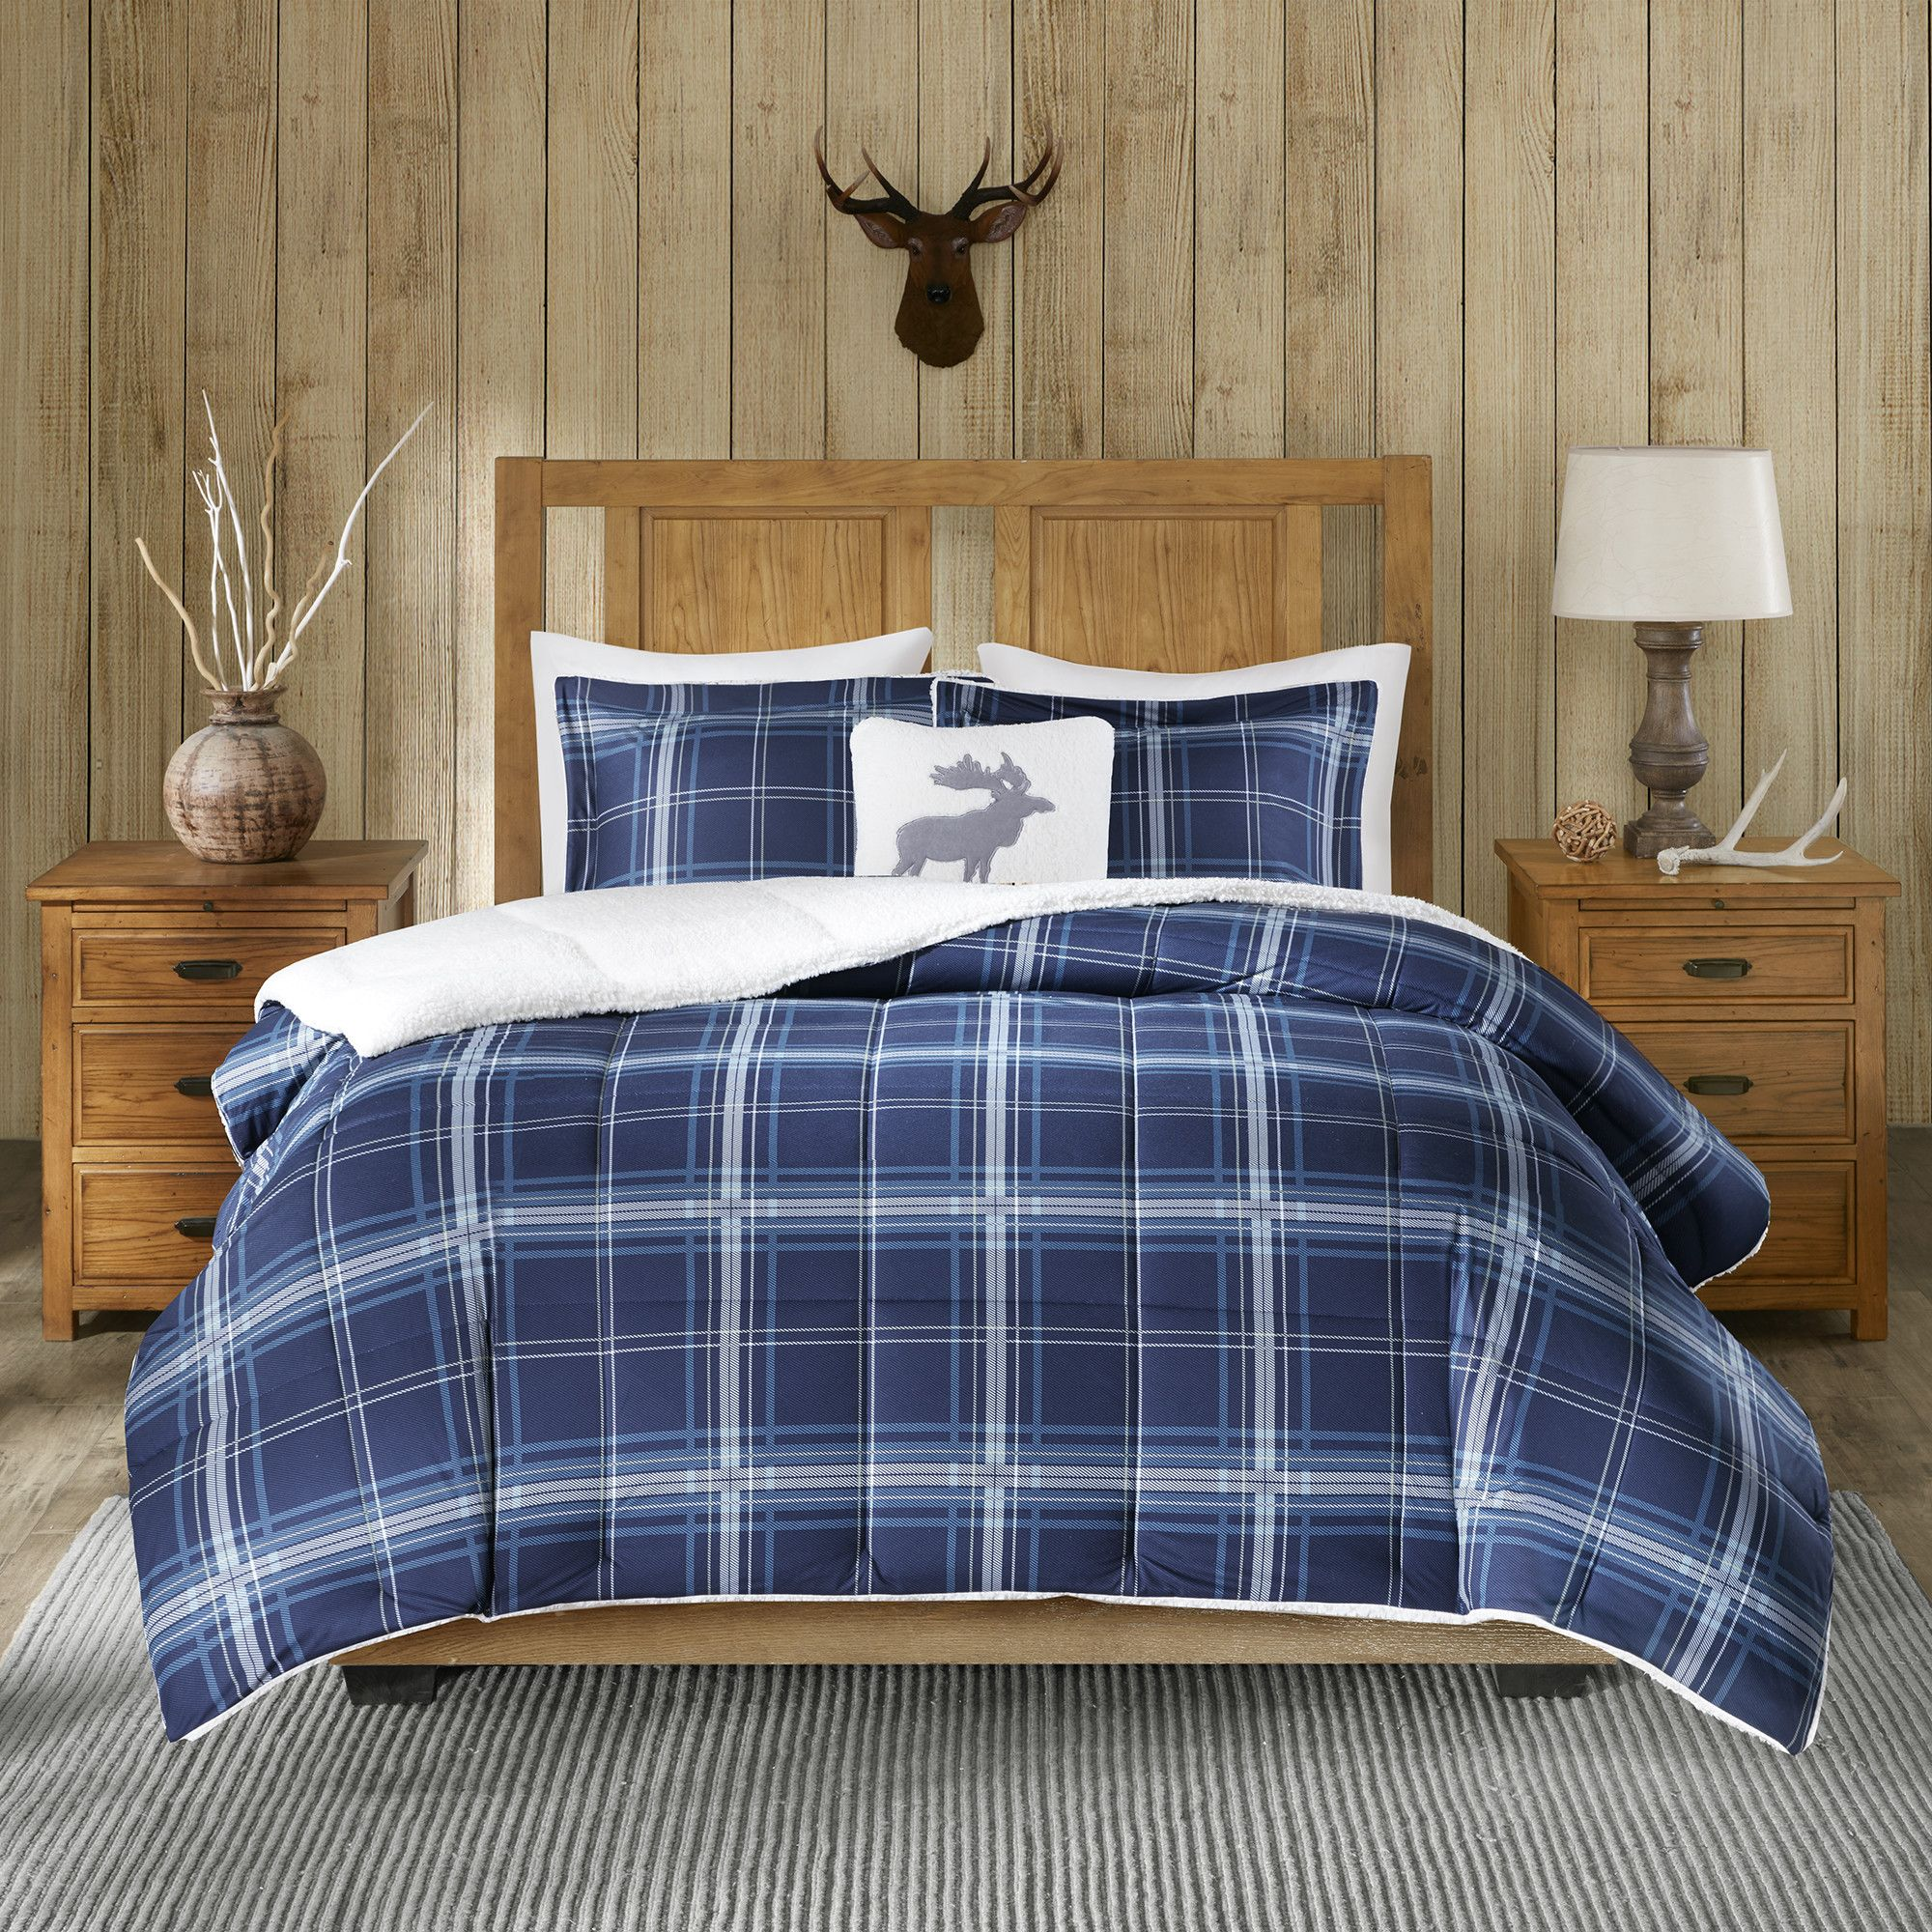 4 Piece Big Sky Comforter Set By Woolrich Products Comforters